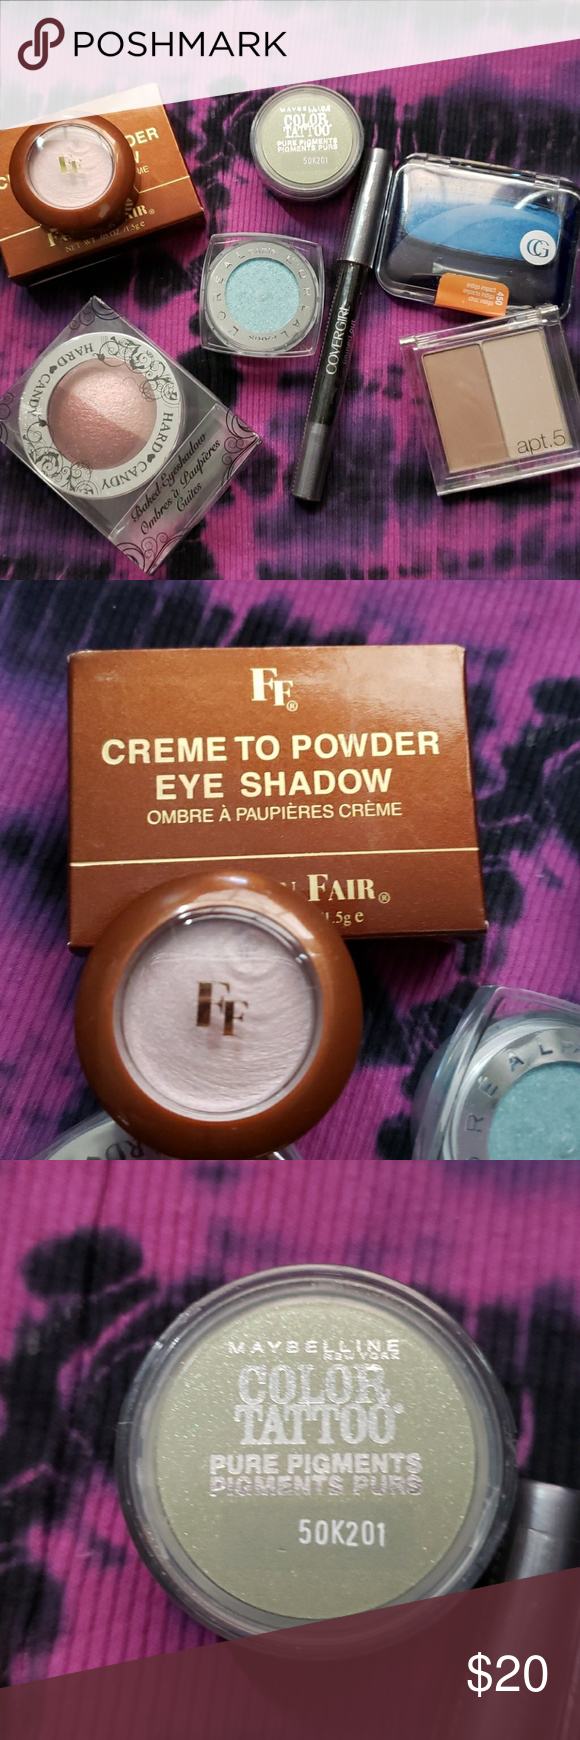 Mixed batch of eyeshadows L'oreal CoverGirl Maybelline